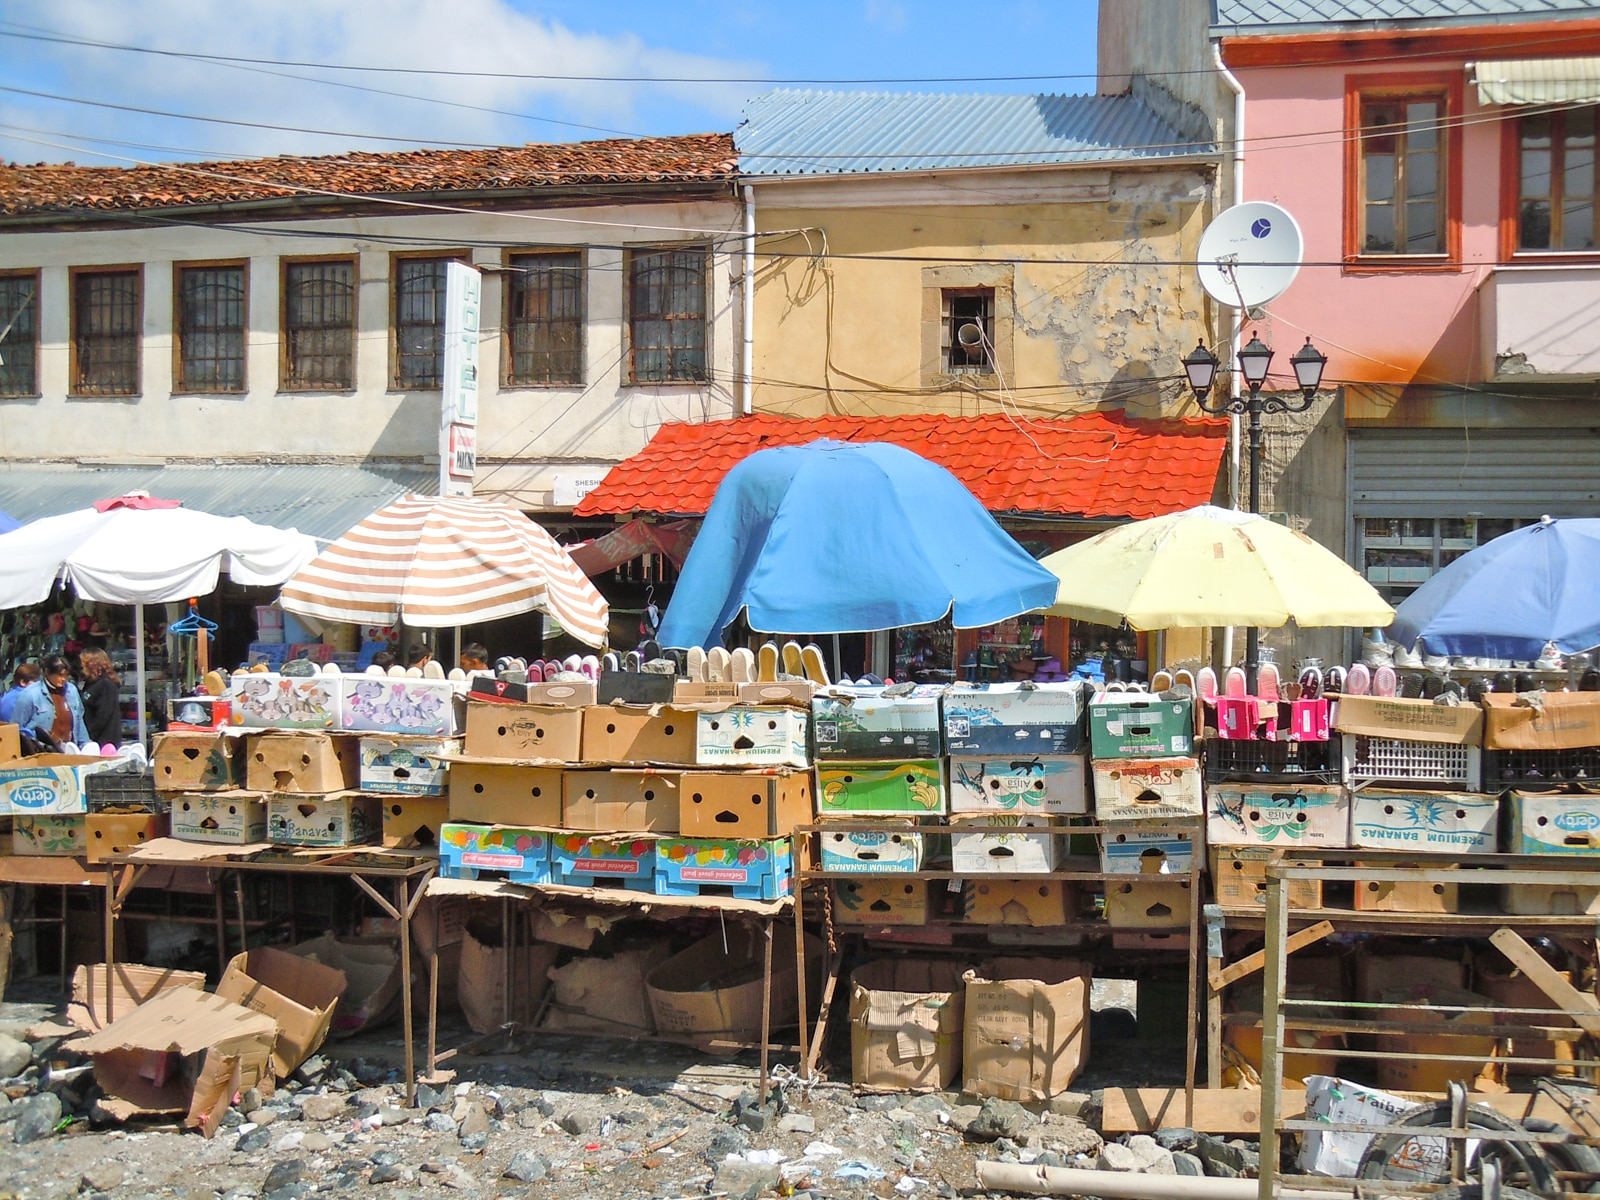 The market in the southeast Albanian town of Korça offers almost everything, from shoes and clothes to cosmetics, food and old TVs, bikes and CDs.